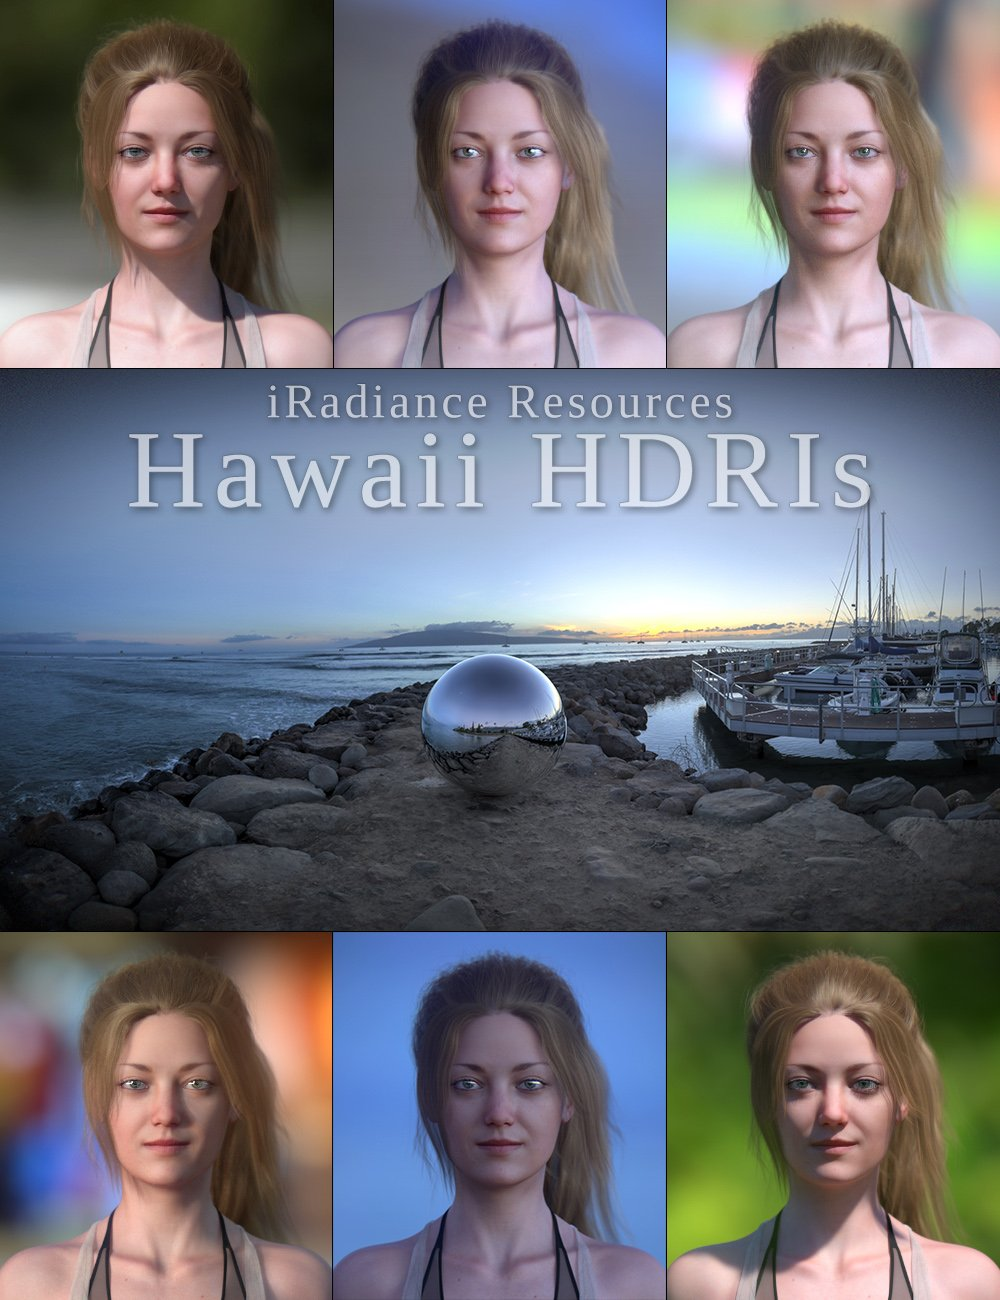 iRadiance HDR Resources - Hawaii by: DimensionTheory, 3D Models by Daz 3D